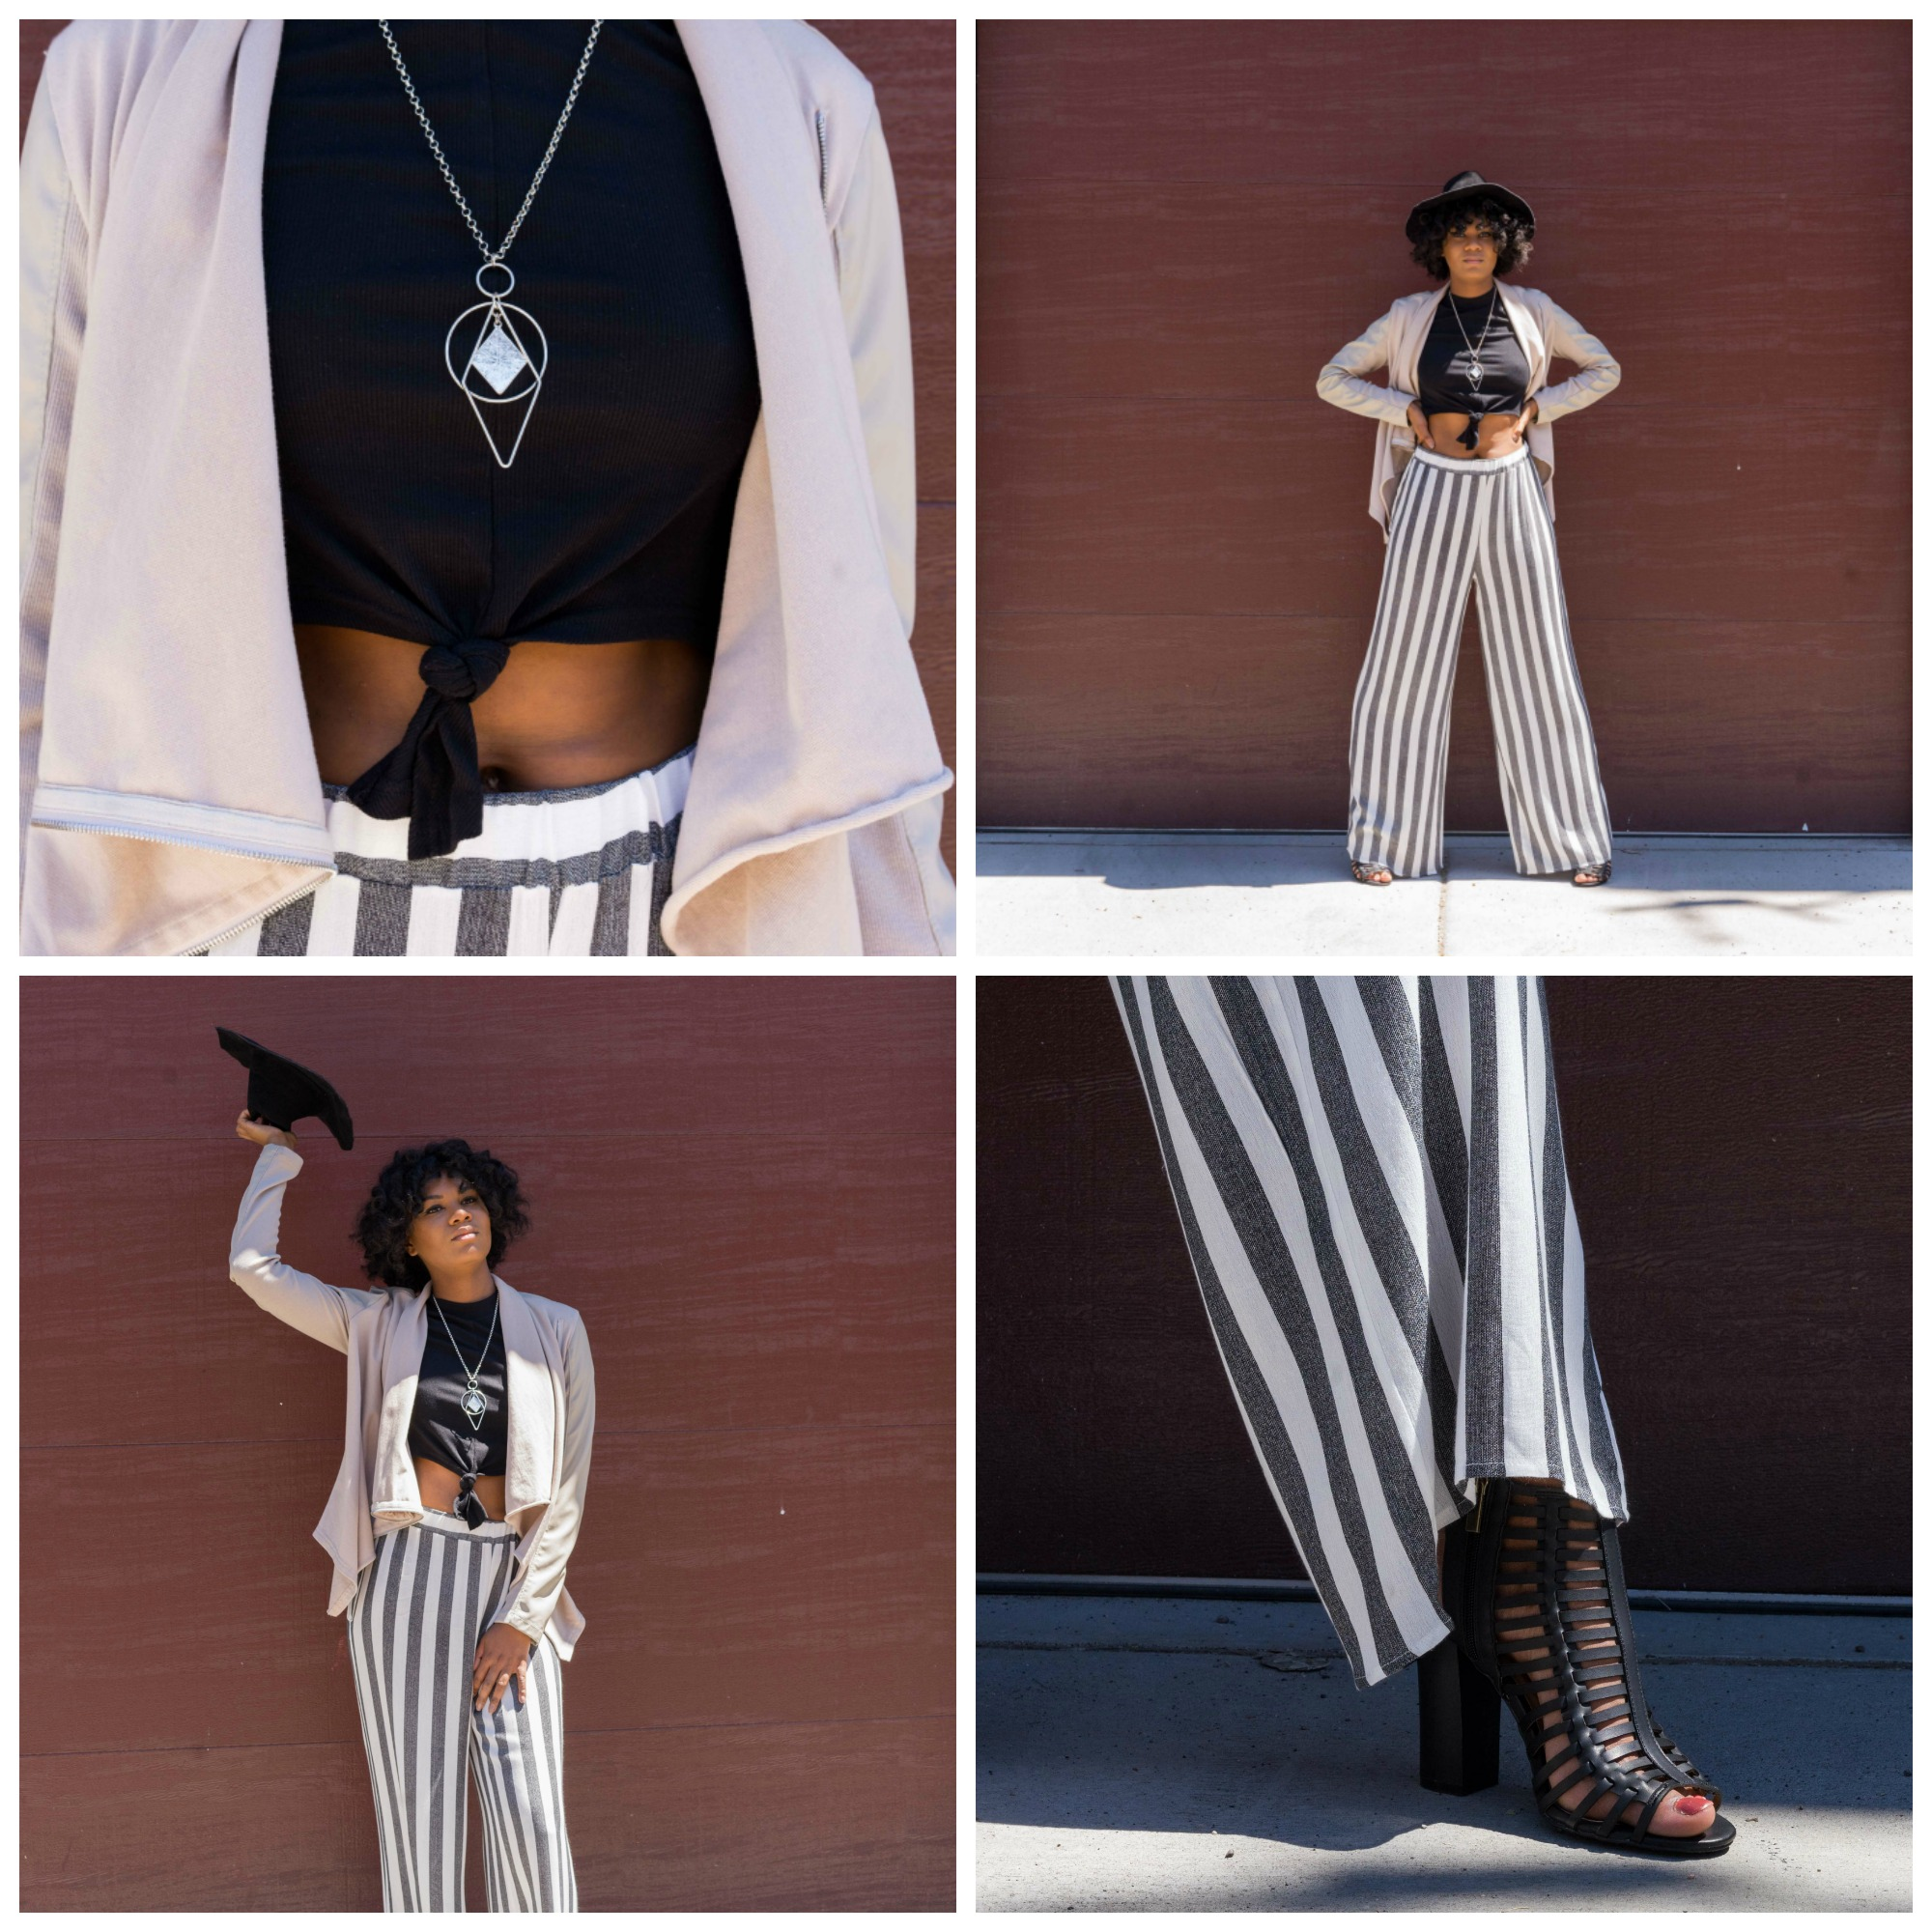 Blank NYC cream jacket $98; black tie crop-top $28; suede floppy hat $46; silver necklace $22; caged, black, stacked heel $42